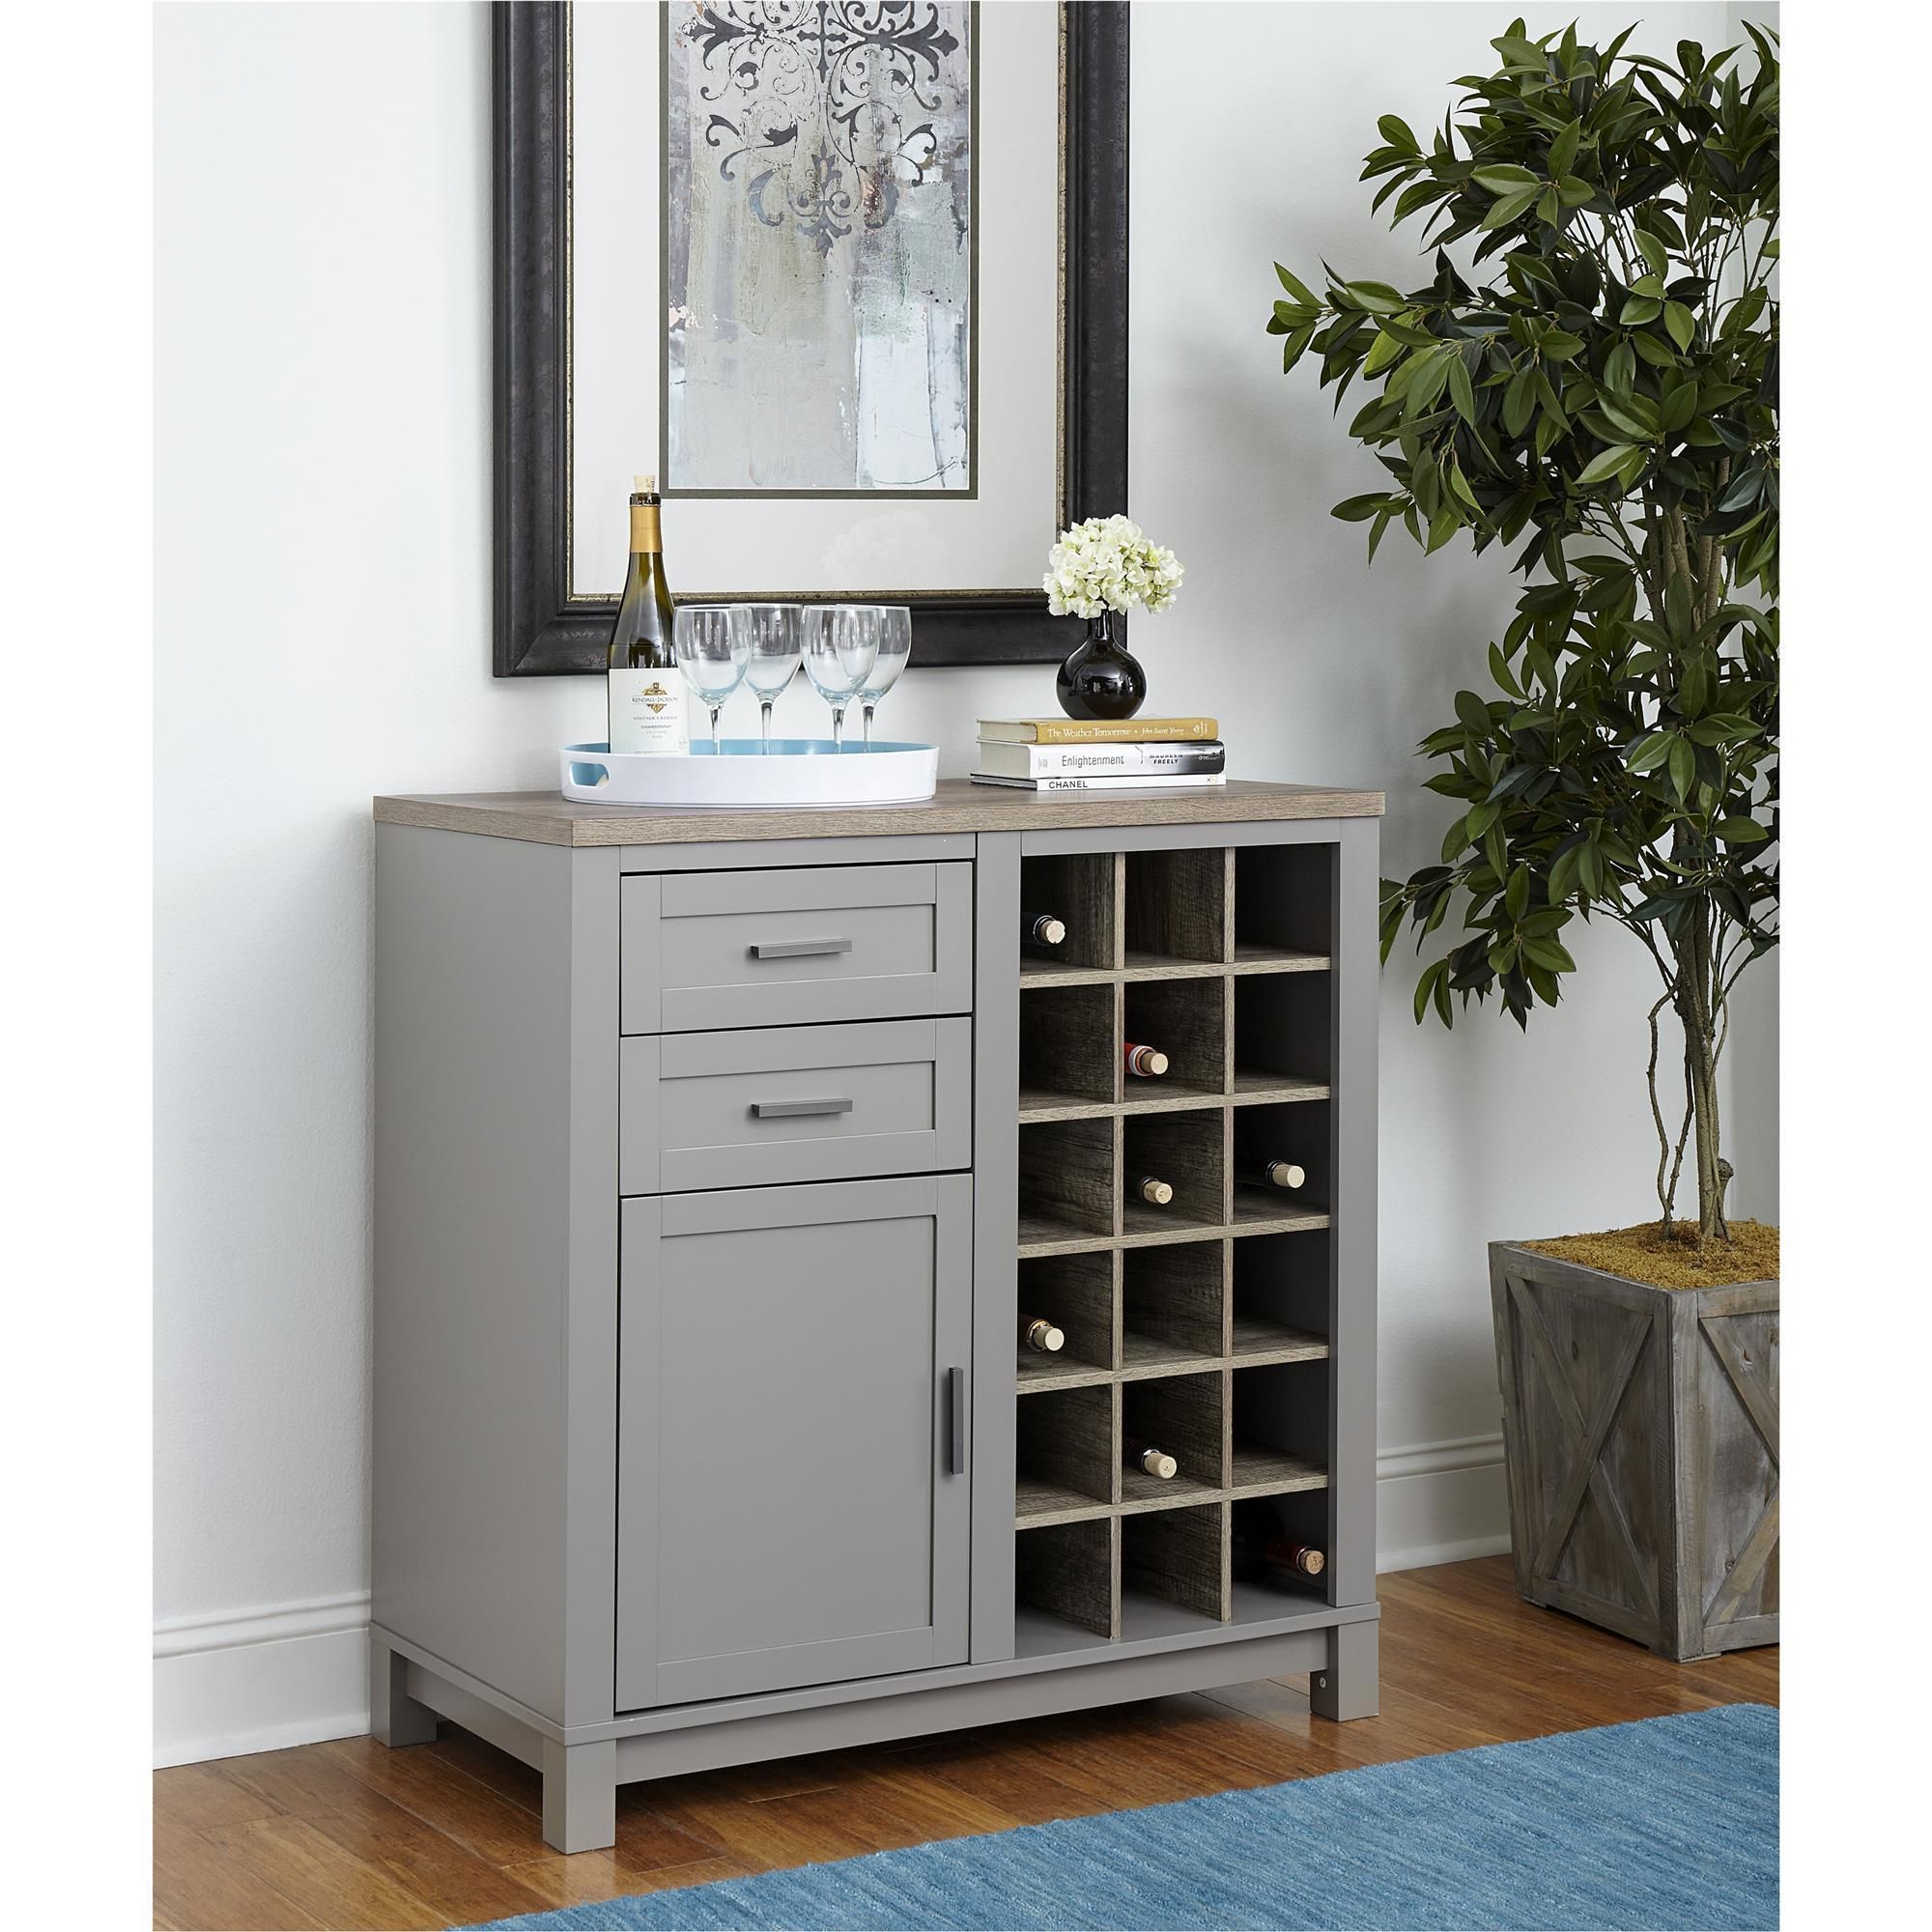 Superieur Ameriwood Home Carver Grey/ Sonoma Oak Bar Cabinet